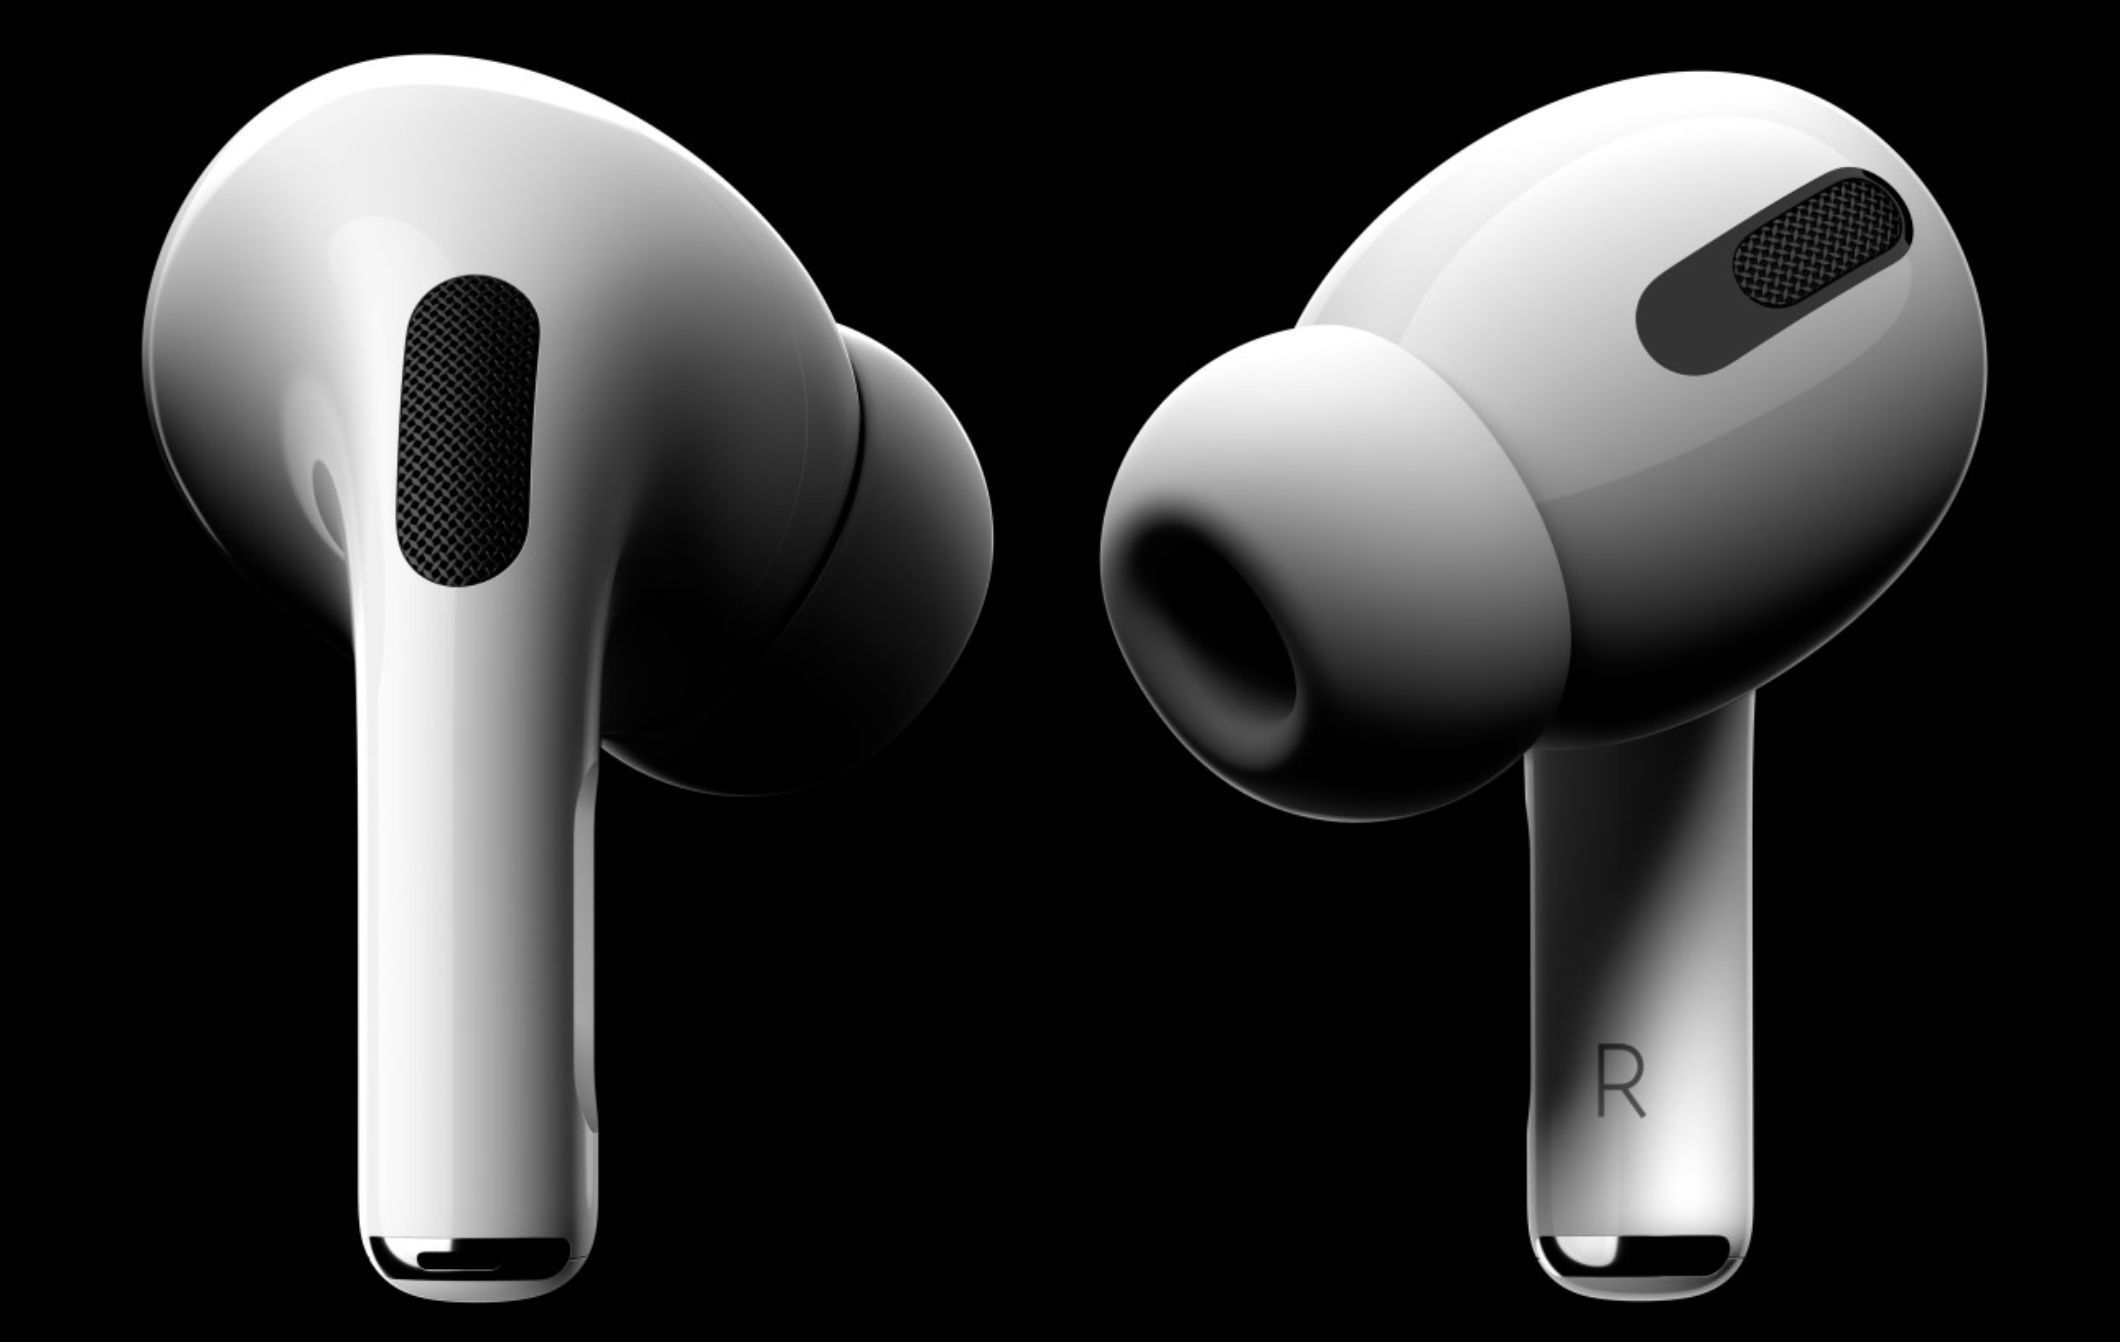 Apple S New Wireless Buds The Airpods Pro Is Now Available In India Earbuds Noise Cancelling Airpods Pro